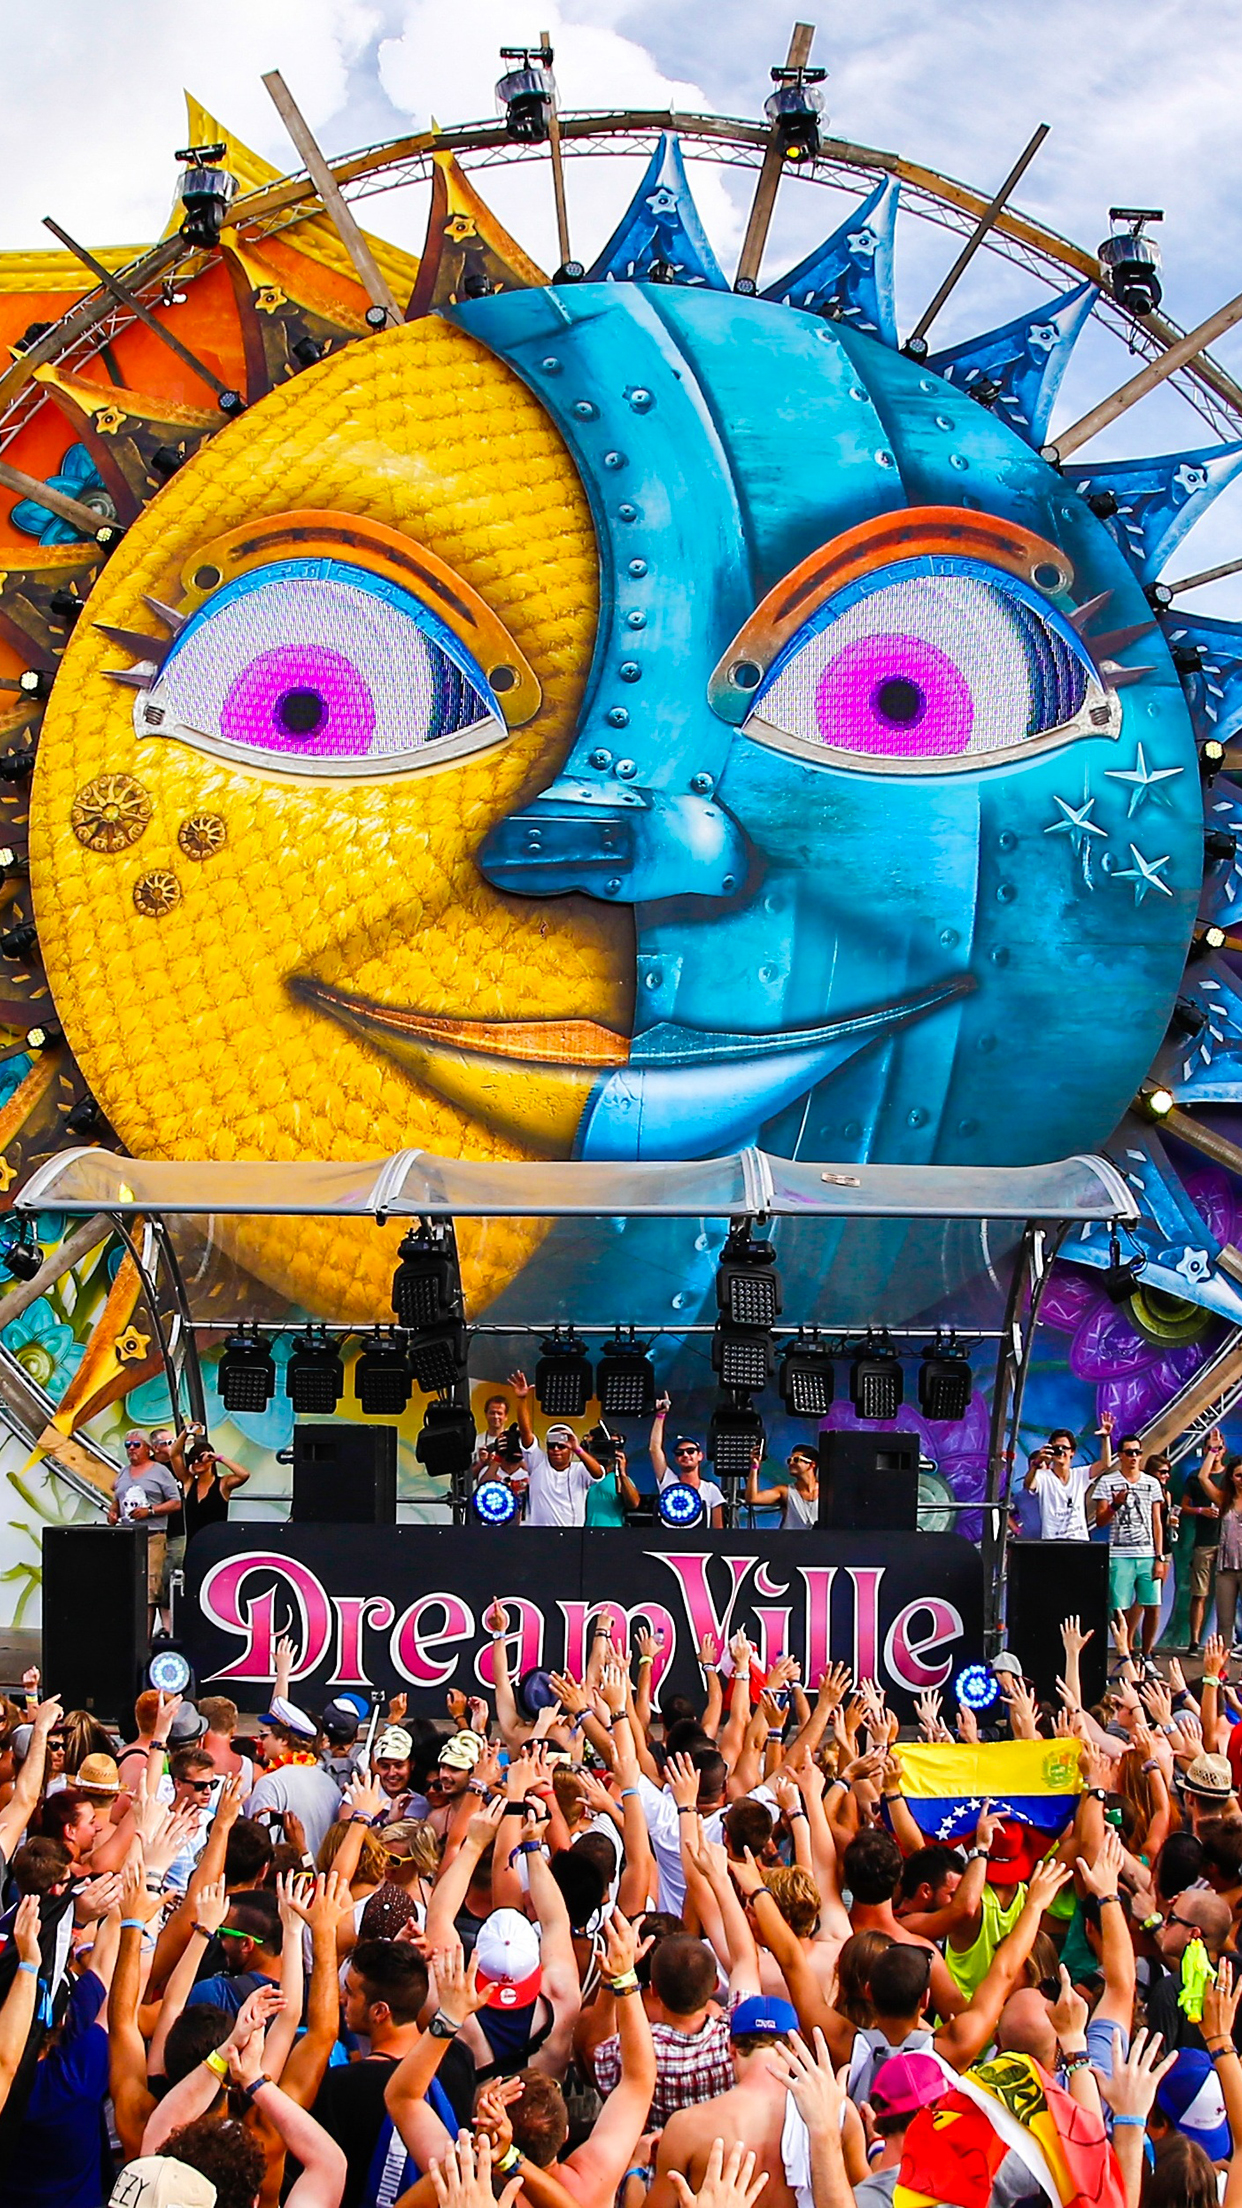 Tomorrowland Dreamland Wallpaper for iPhone X, 8, 7, 6 ...